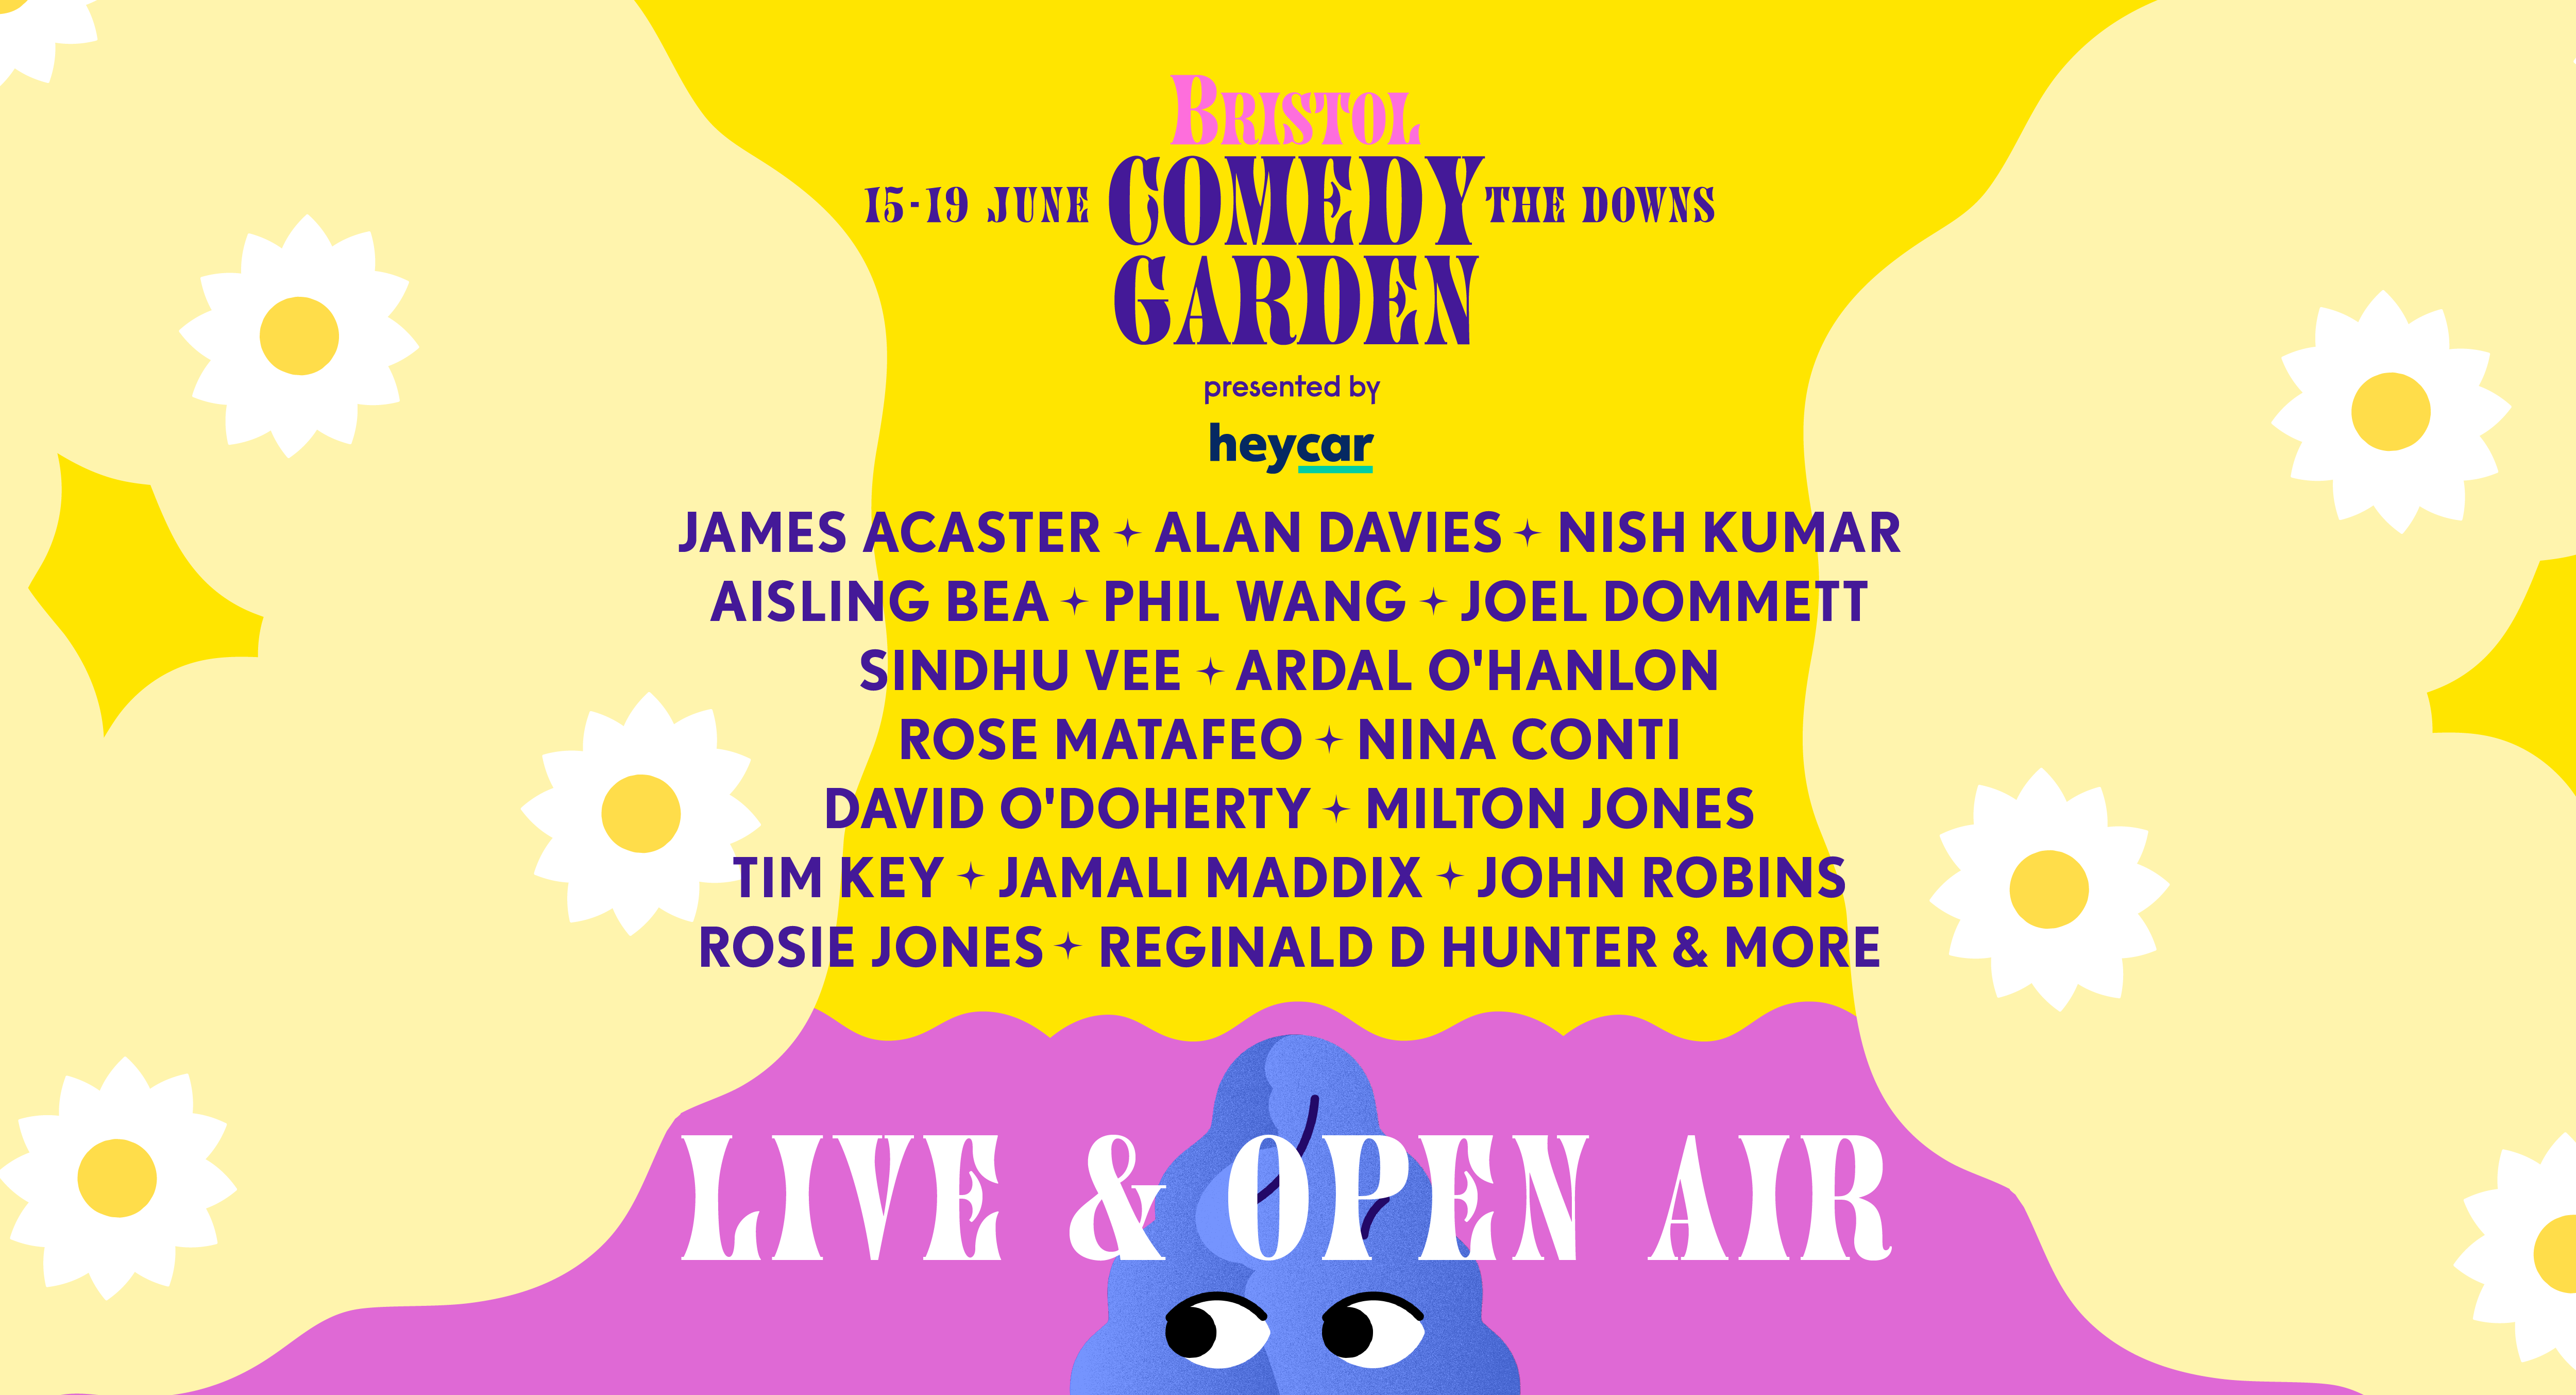 bristolcomedygarden